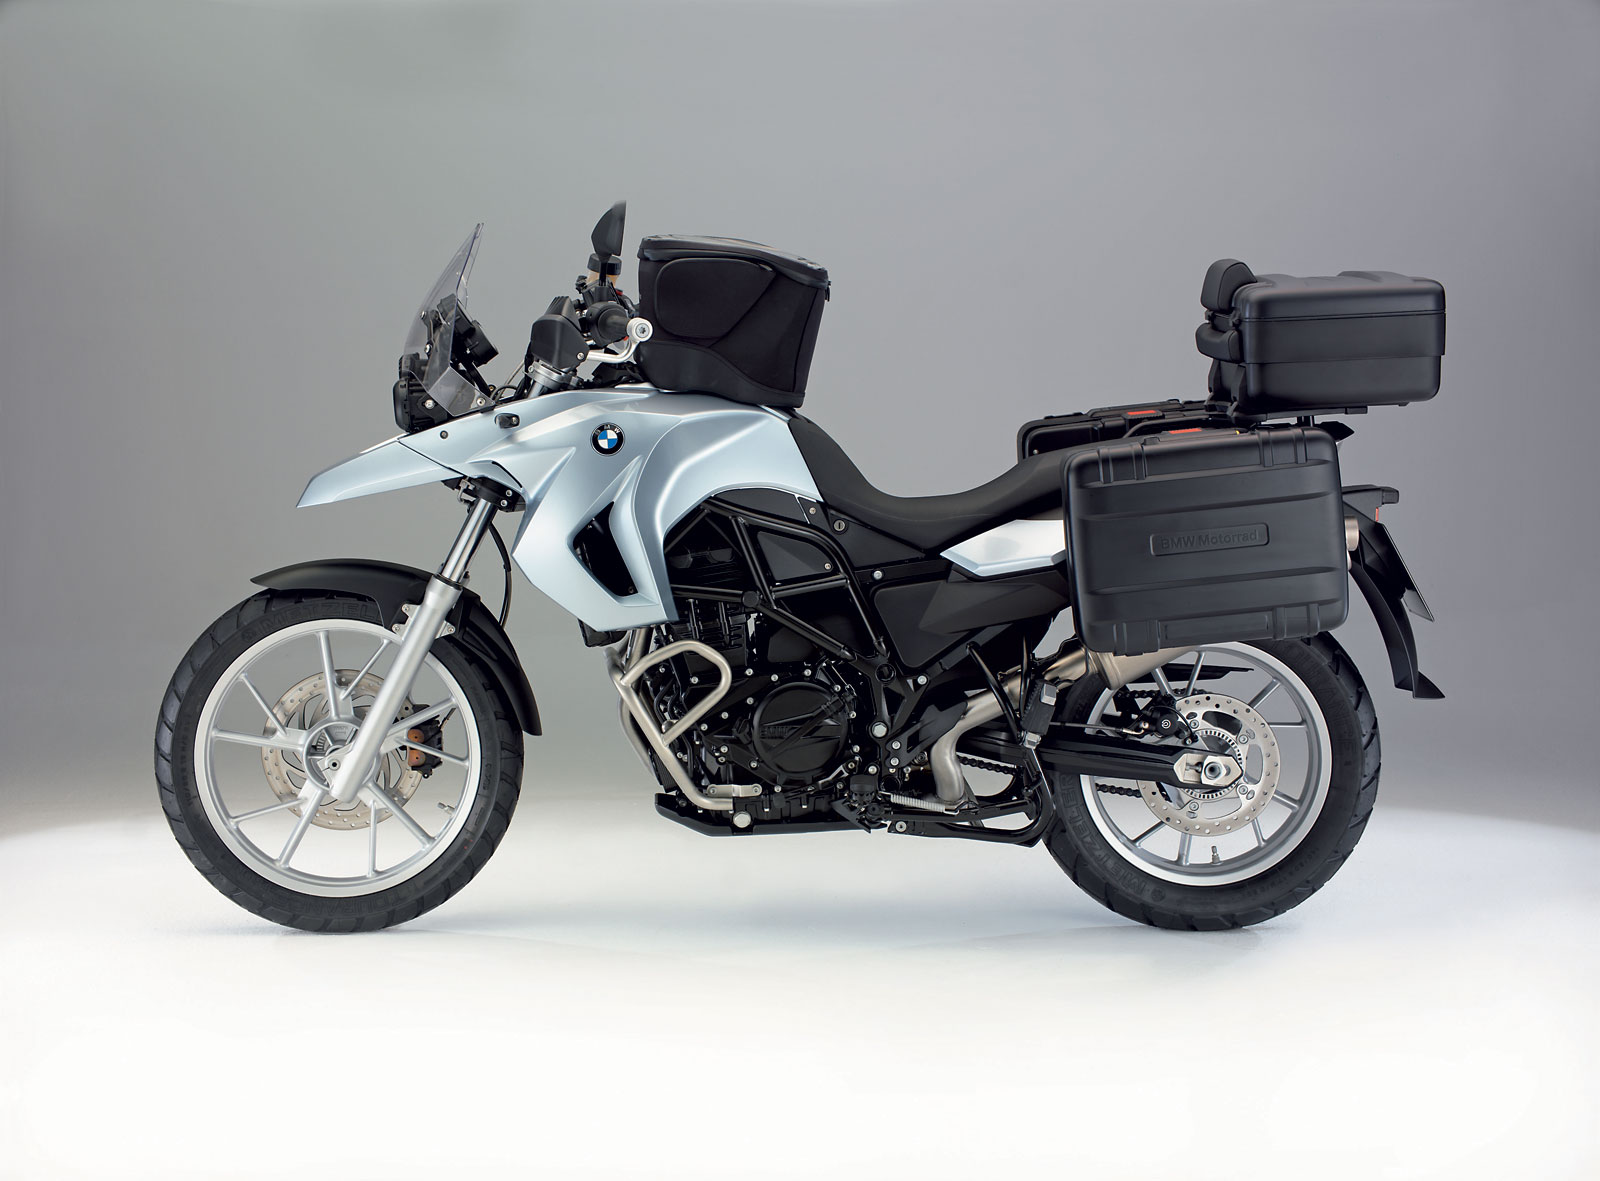 BMW G 650 GS 2010 images #8860